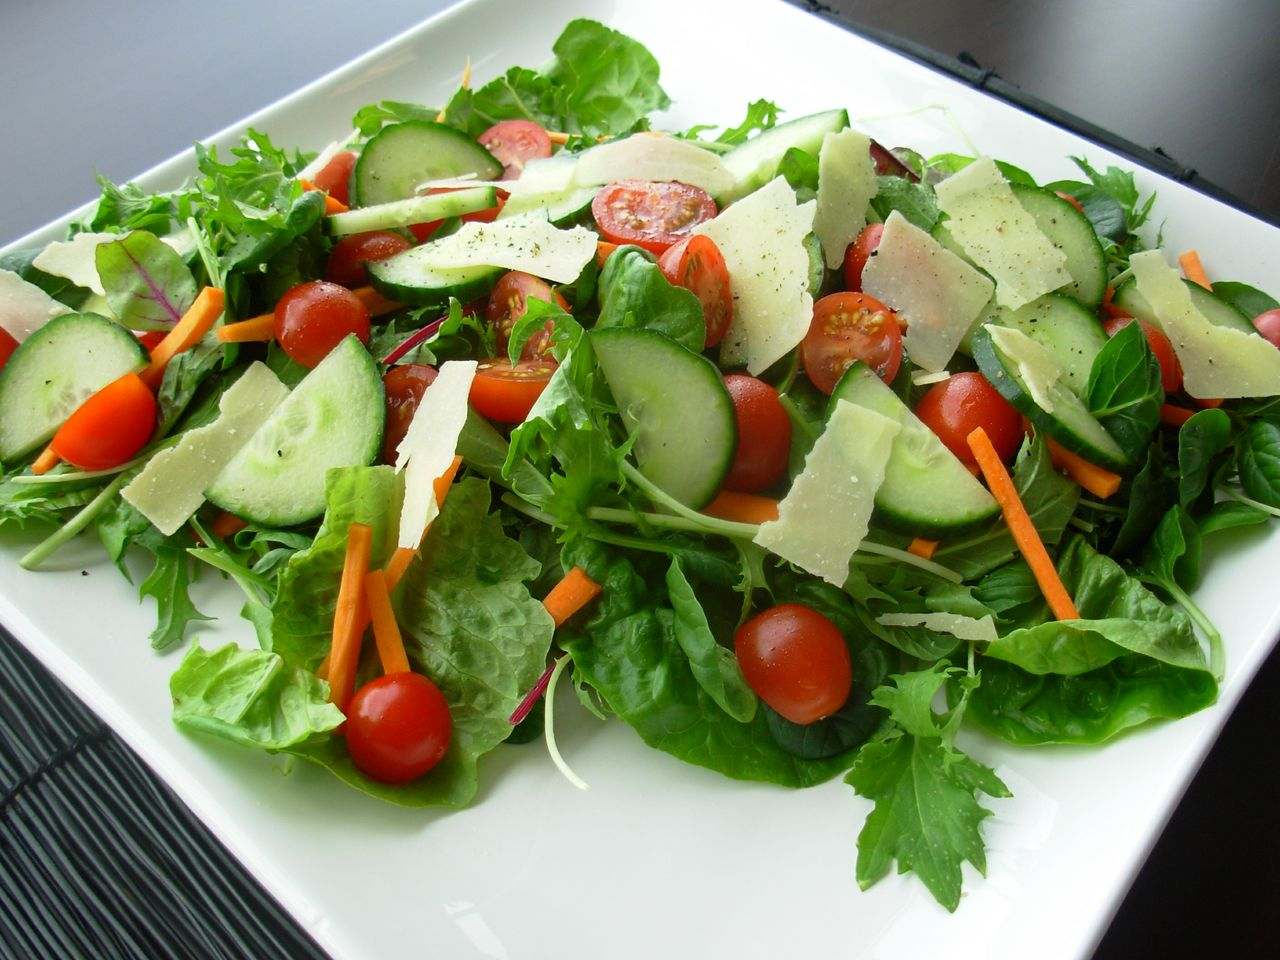 Rocket lettuce salad recipes